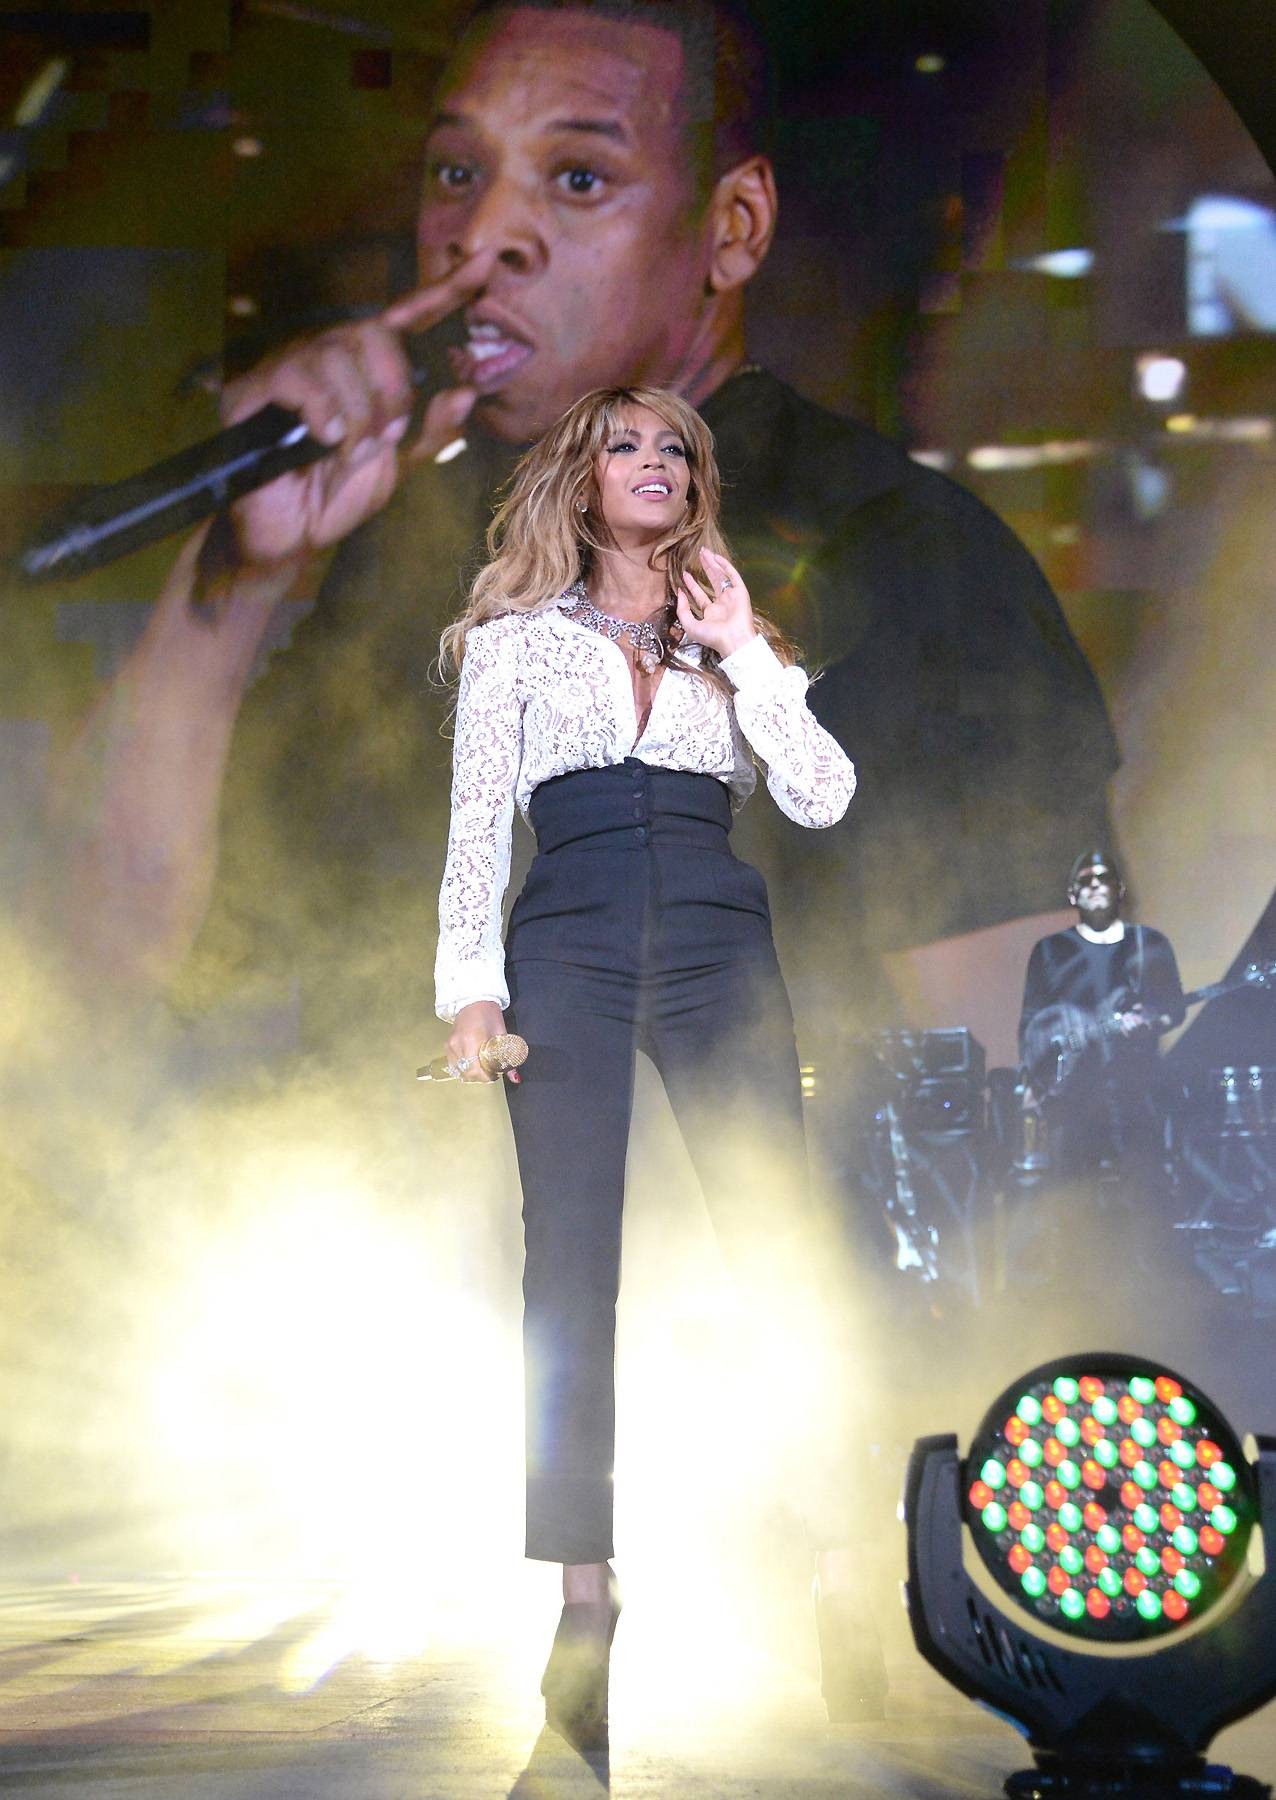 """Global Citizen Festival - It's funny how the Carters are now known for surprises, but the shock factor never gets old. The couple gave attendees at New York City's Global Citizen Festival a special treat when Hov brought out his other half to perform """"Holy Grail"""" and """"Young Forever.""""(Photo: Kevin Mazur/Getty Images for Global Citizen Festival)"""